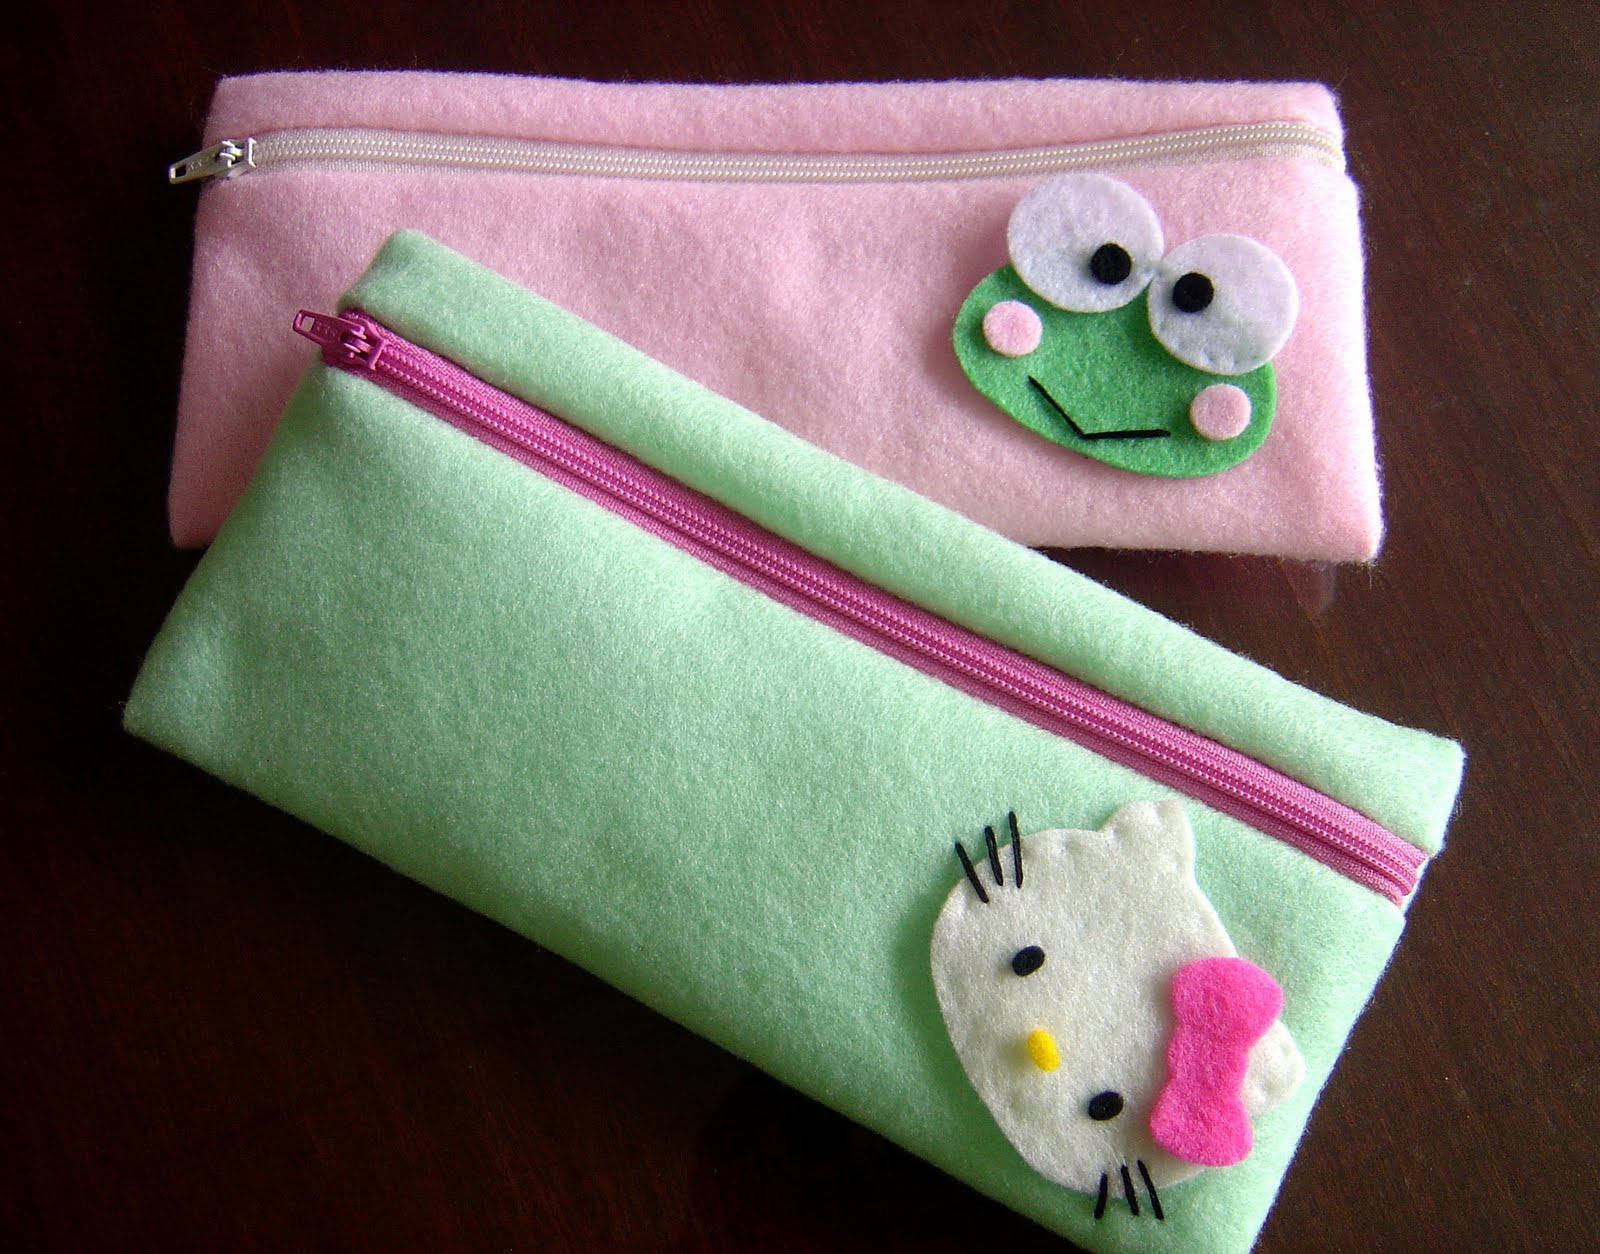 Pin Dompet Flanel Cake on Pinterest